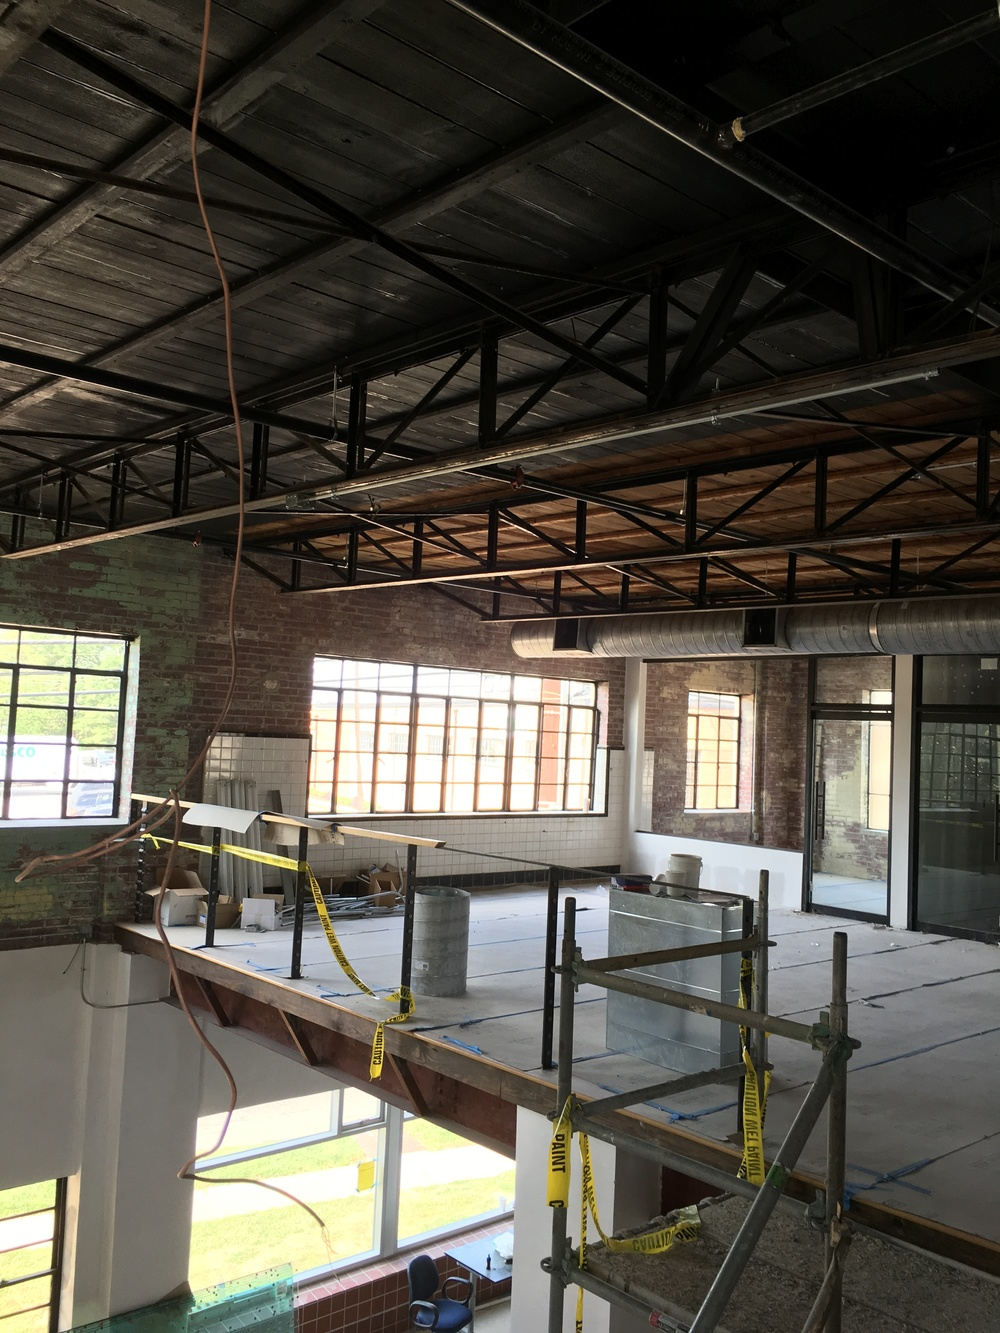 Second floor offices in former syrup room location